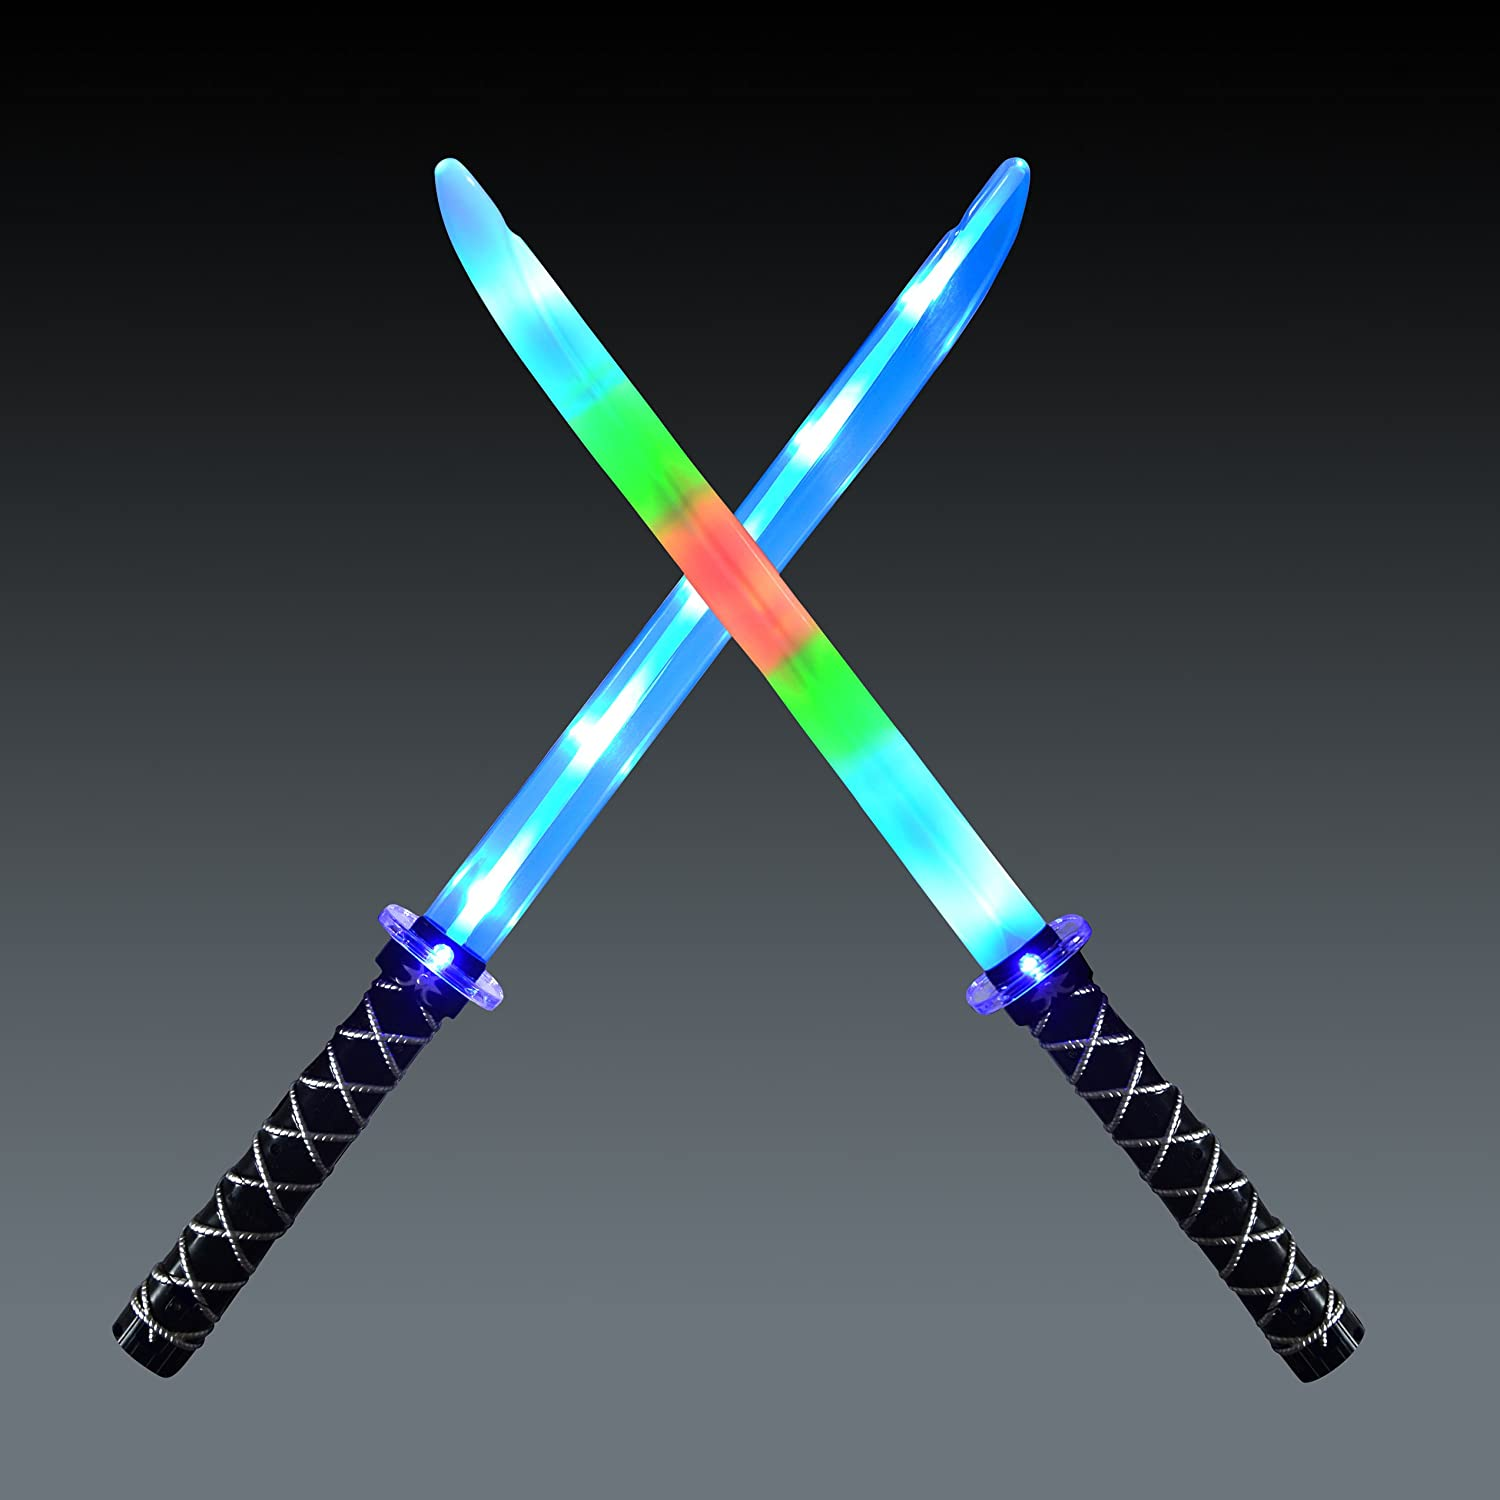 JOYIN 2 Deluxe Ninja LED Light Up Swords with Motion Activated Clanging Sounds ñ Bright Blue and Multi Color Sword for Halloween Party, Costume Accessories